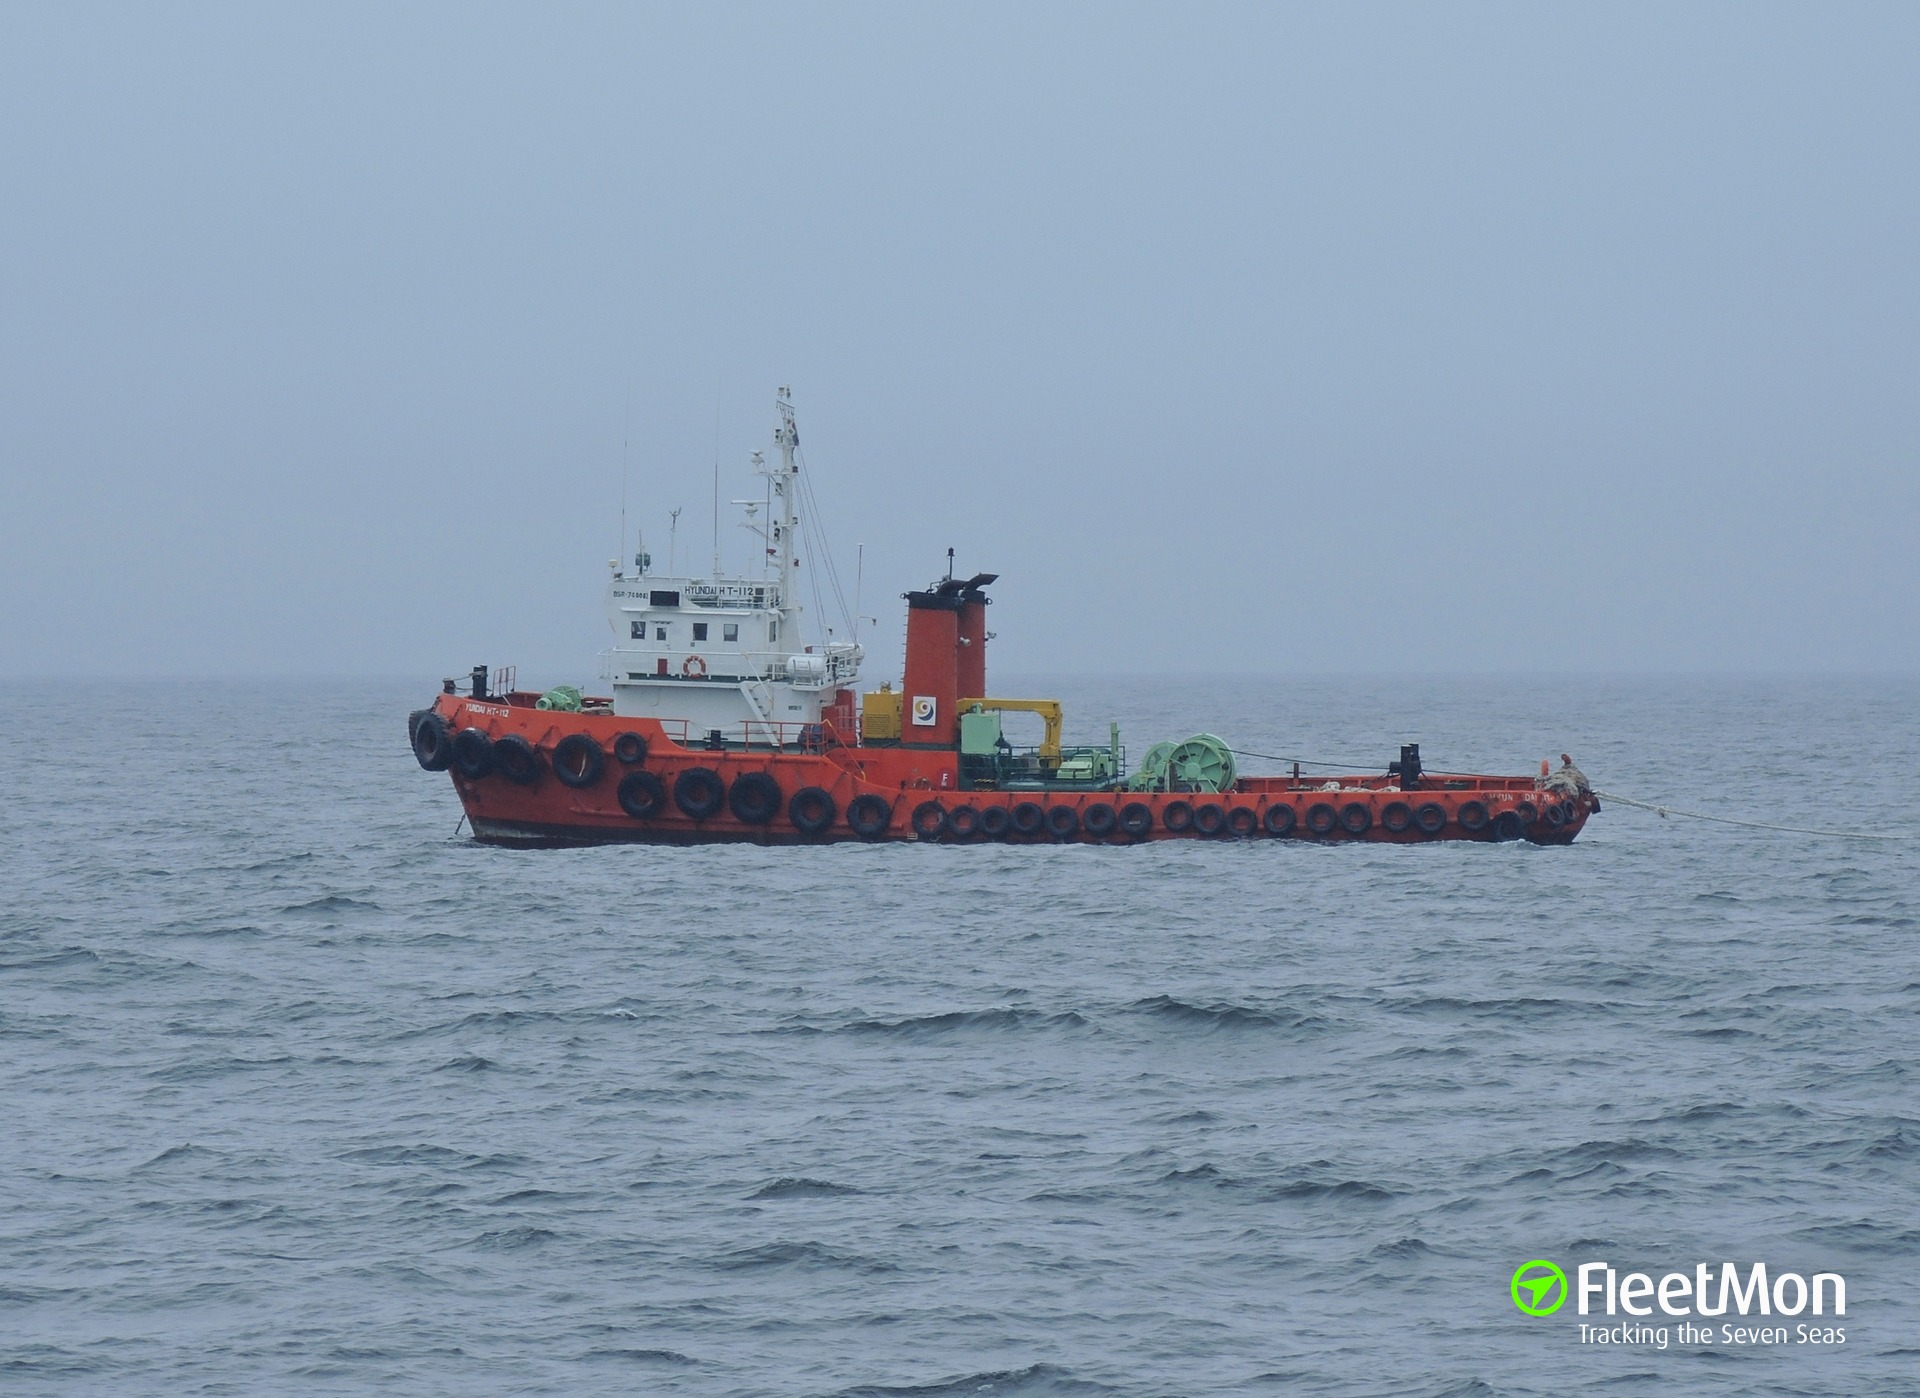 Towed ferry sank or sinking in East China Sea